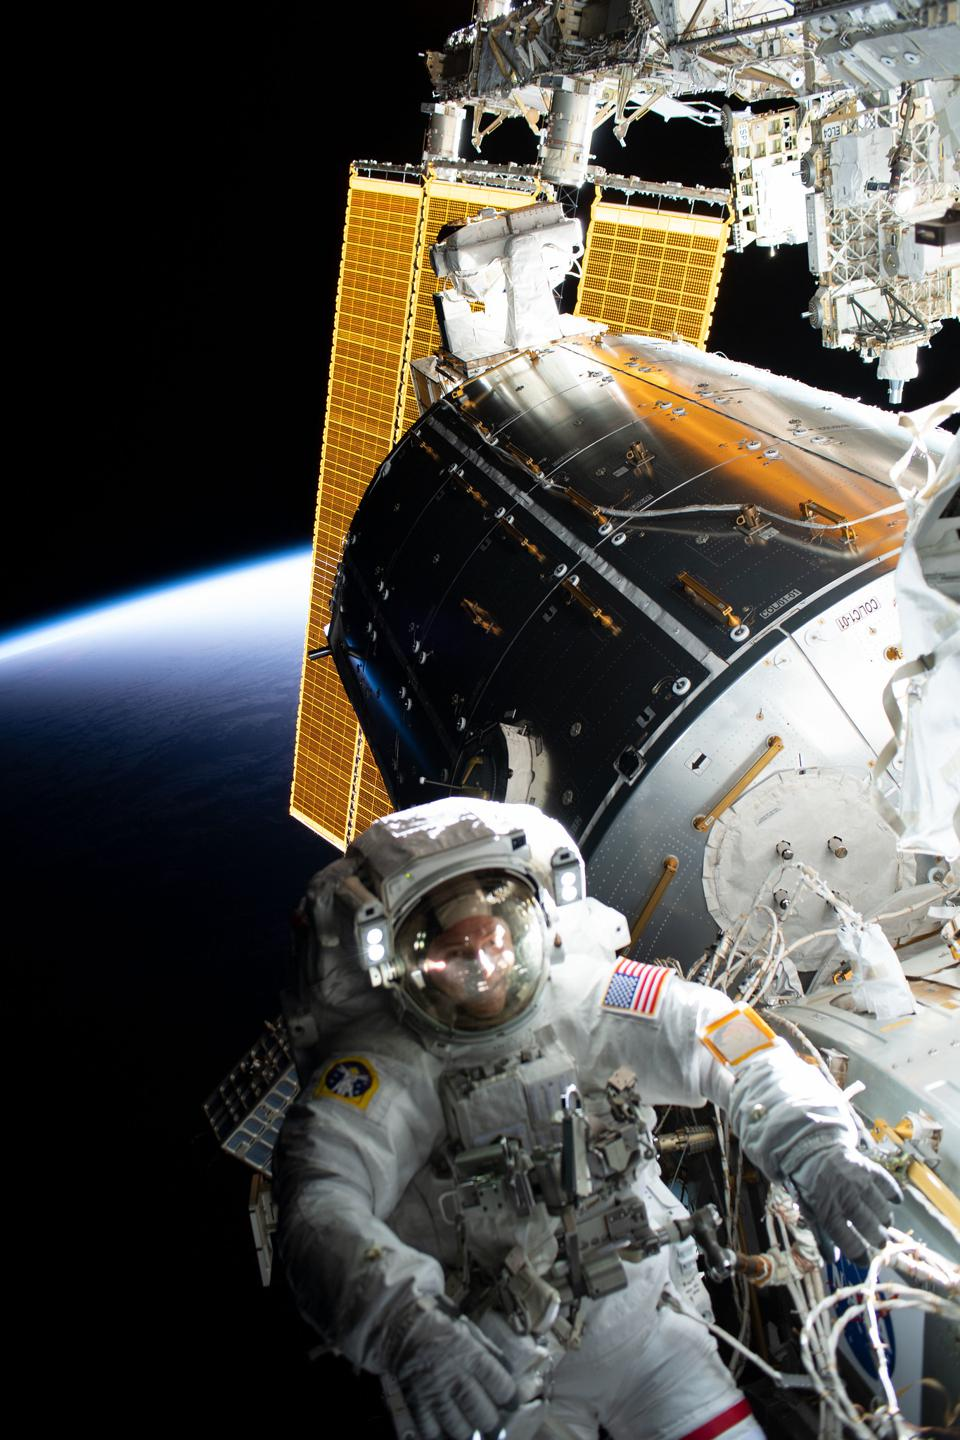 Astronaut Nick Hague tethered to the International Space Station.